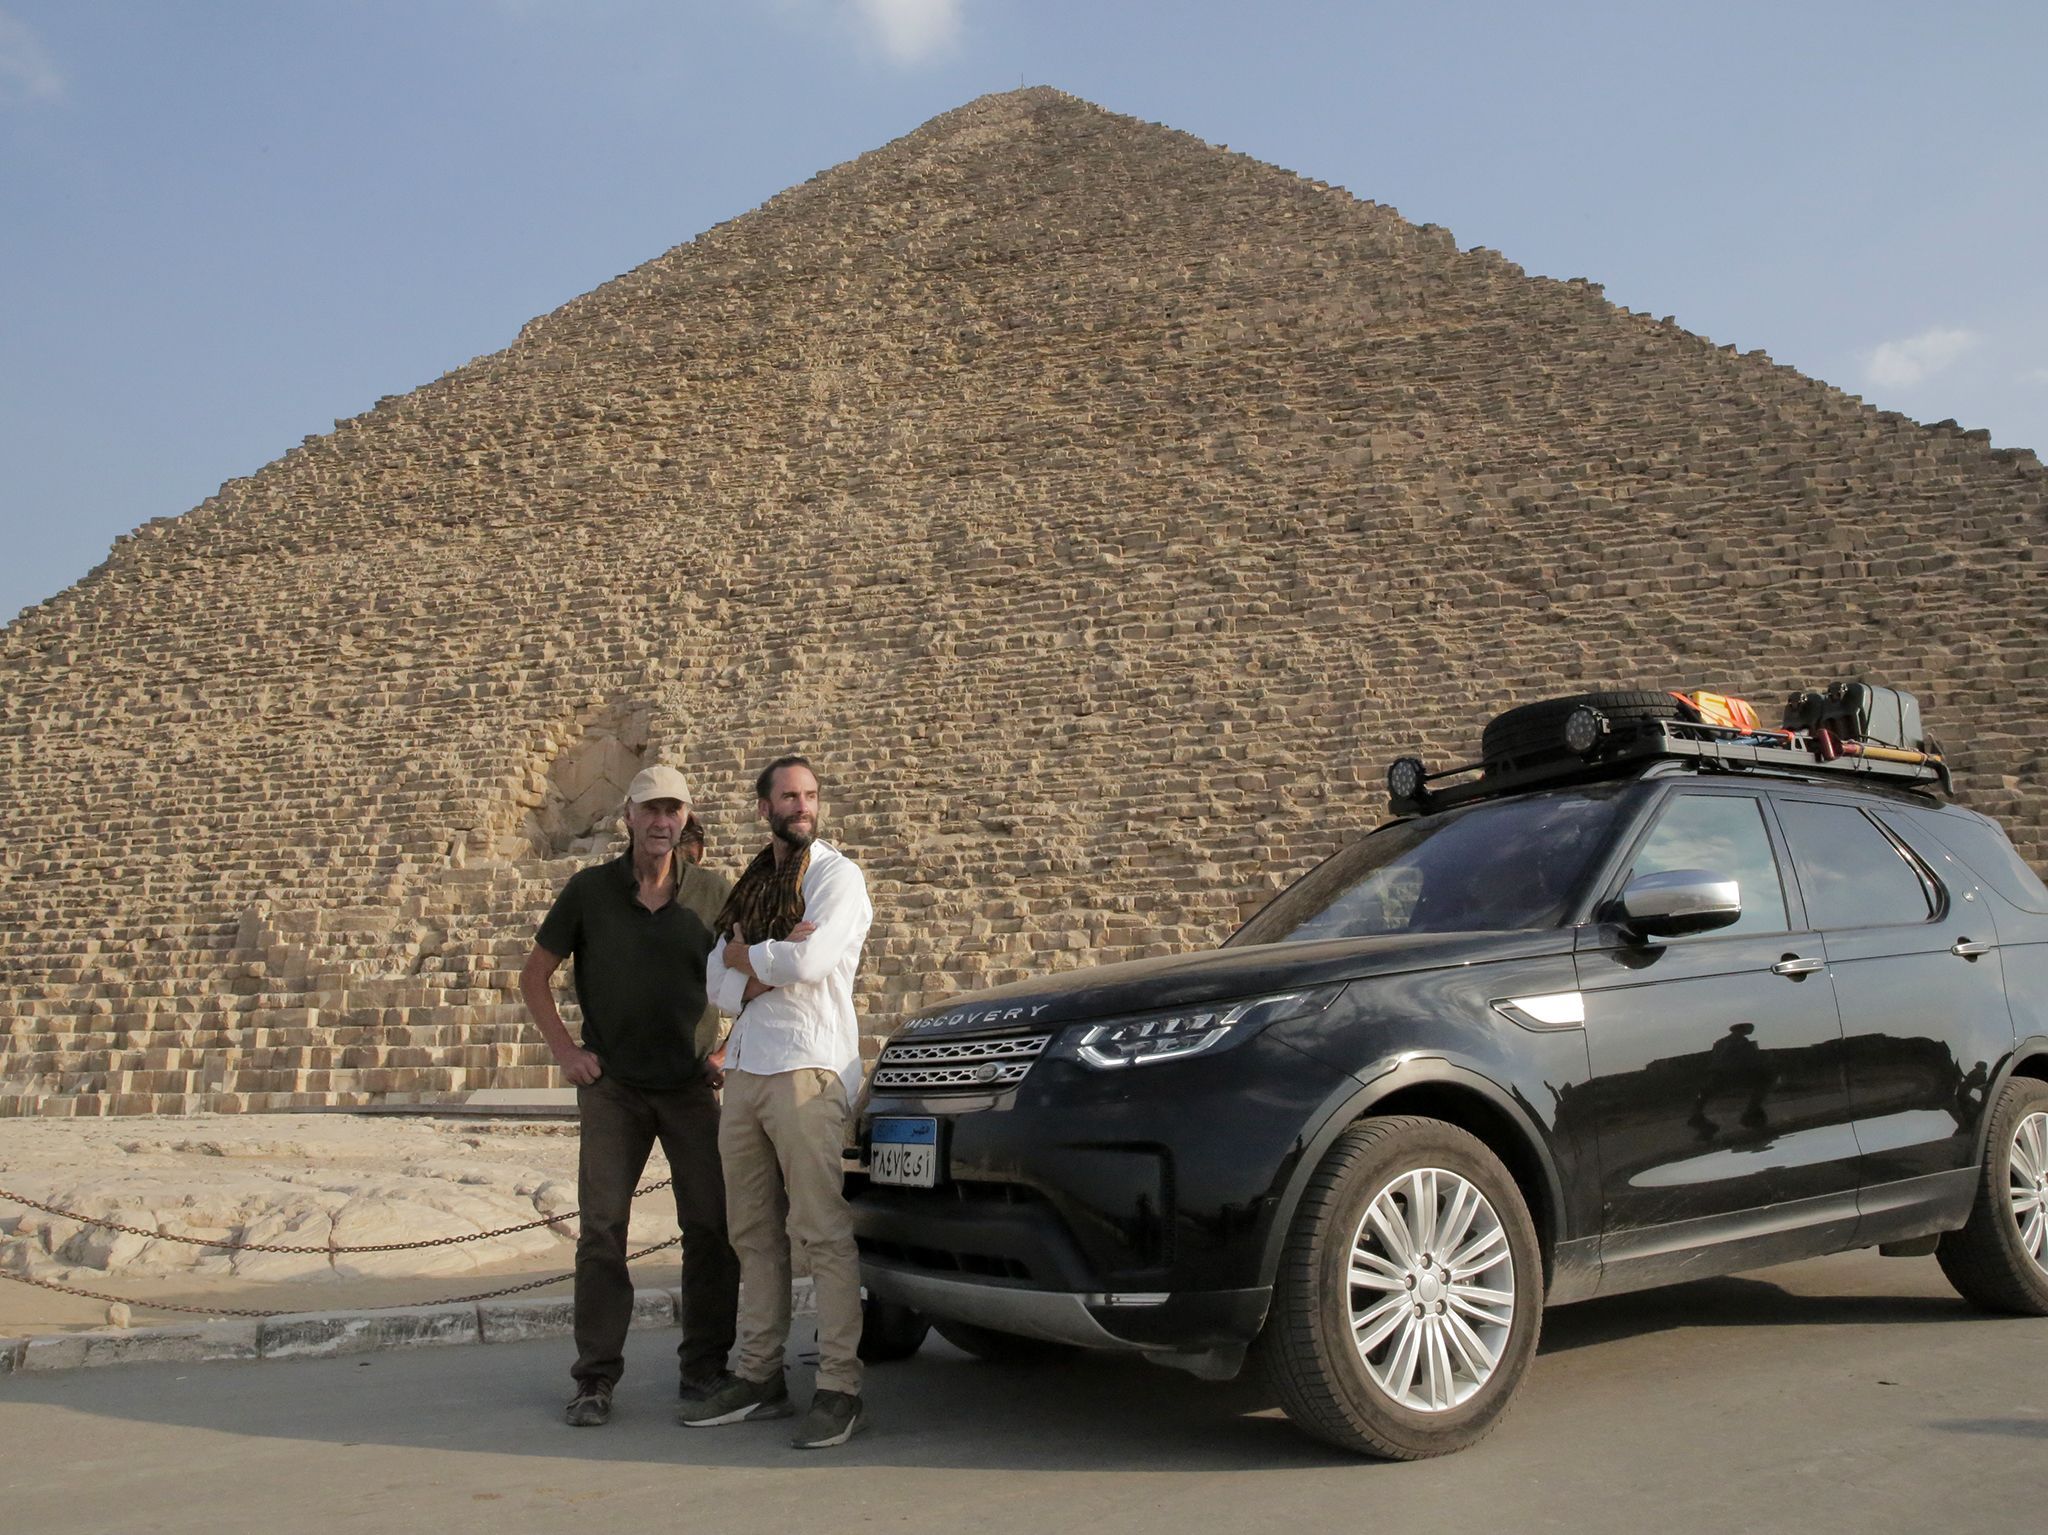 Joe and Ran Fiennes with crew filming at the pyramids in Giza. This image is from Egypt with the... [Foto del giorno - aprile 2019]